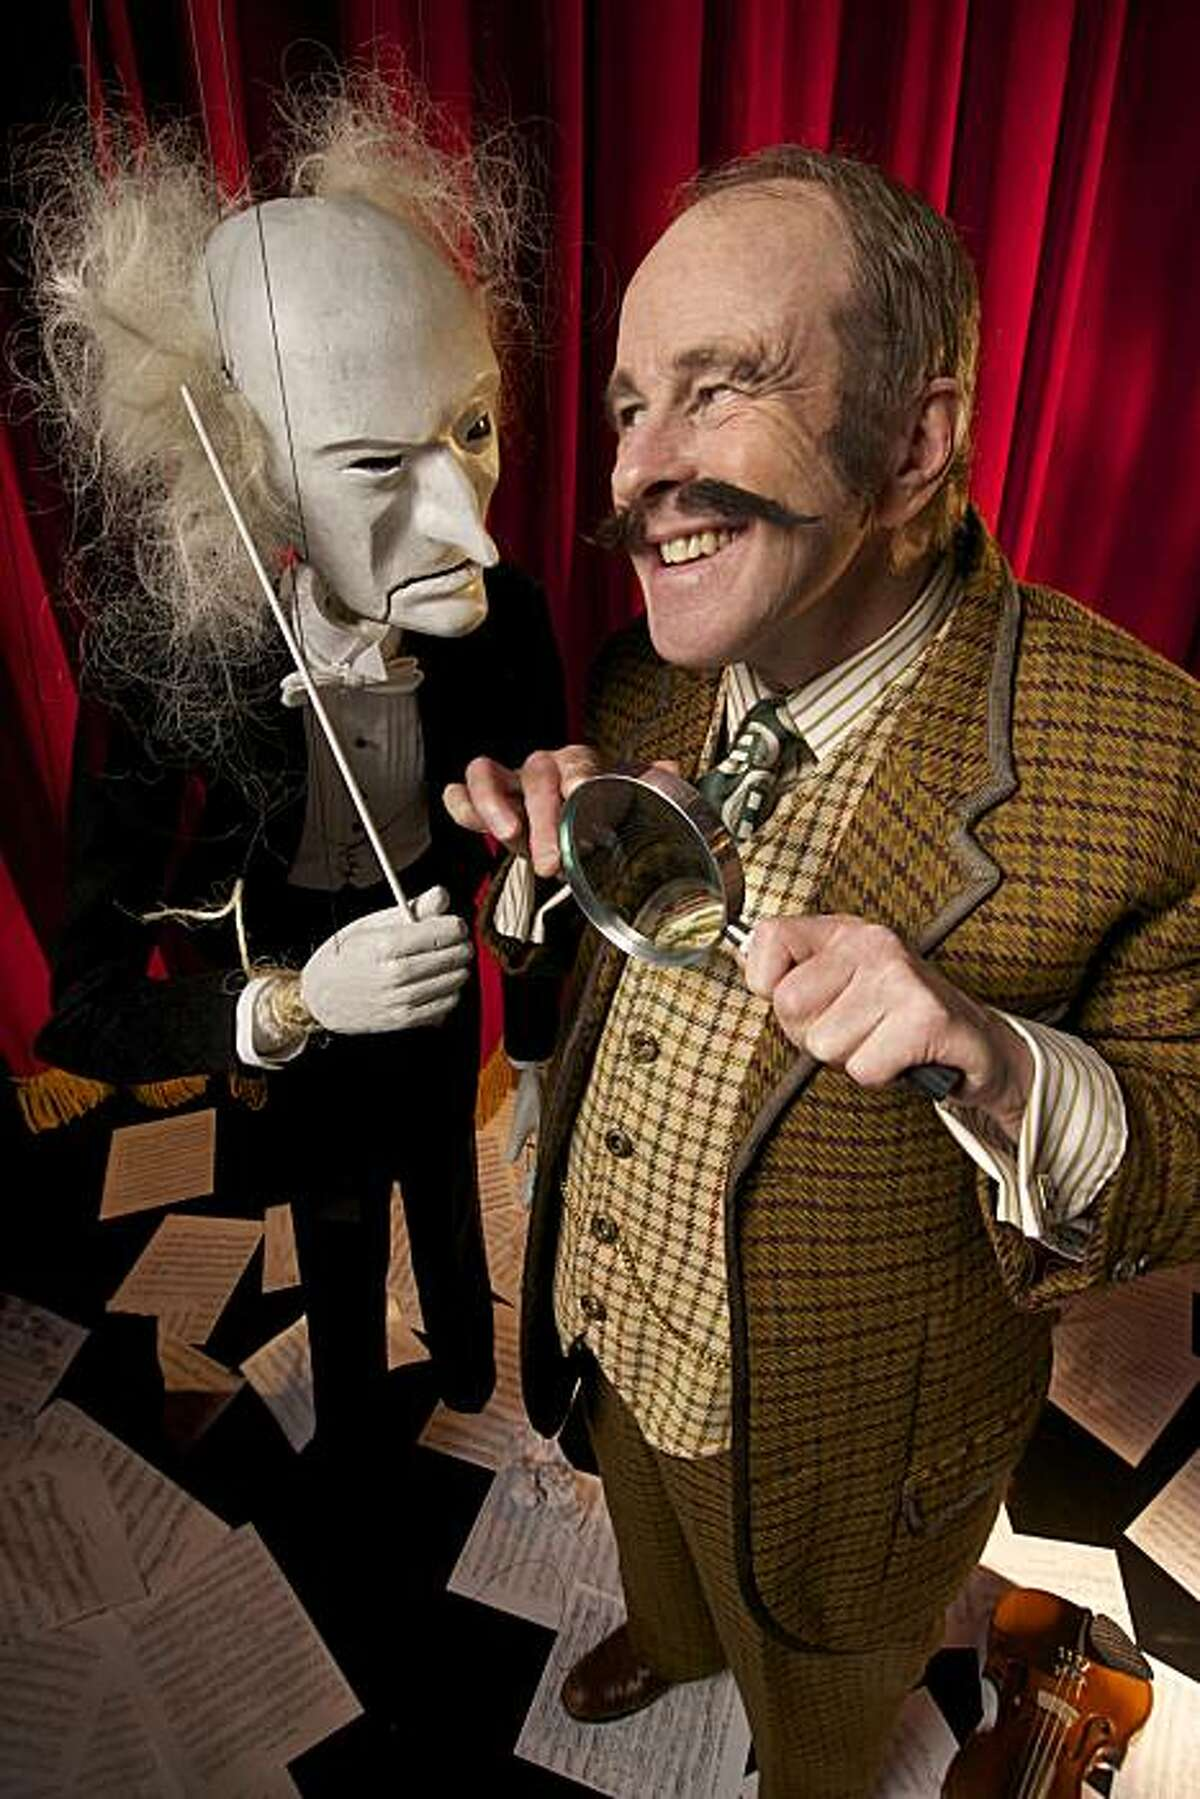 Geoff Hoyle plays an inspector investigating a crime in an orchestra of marionettes in